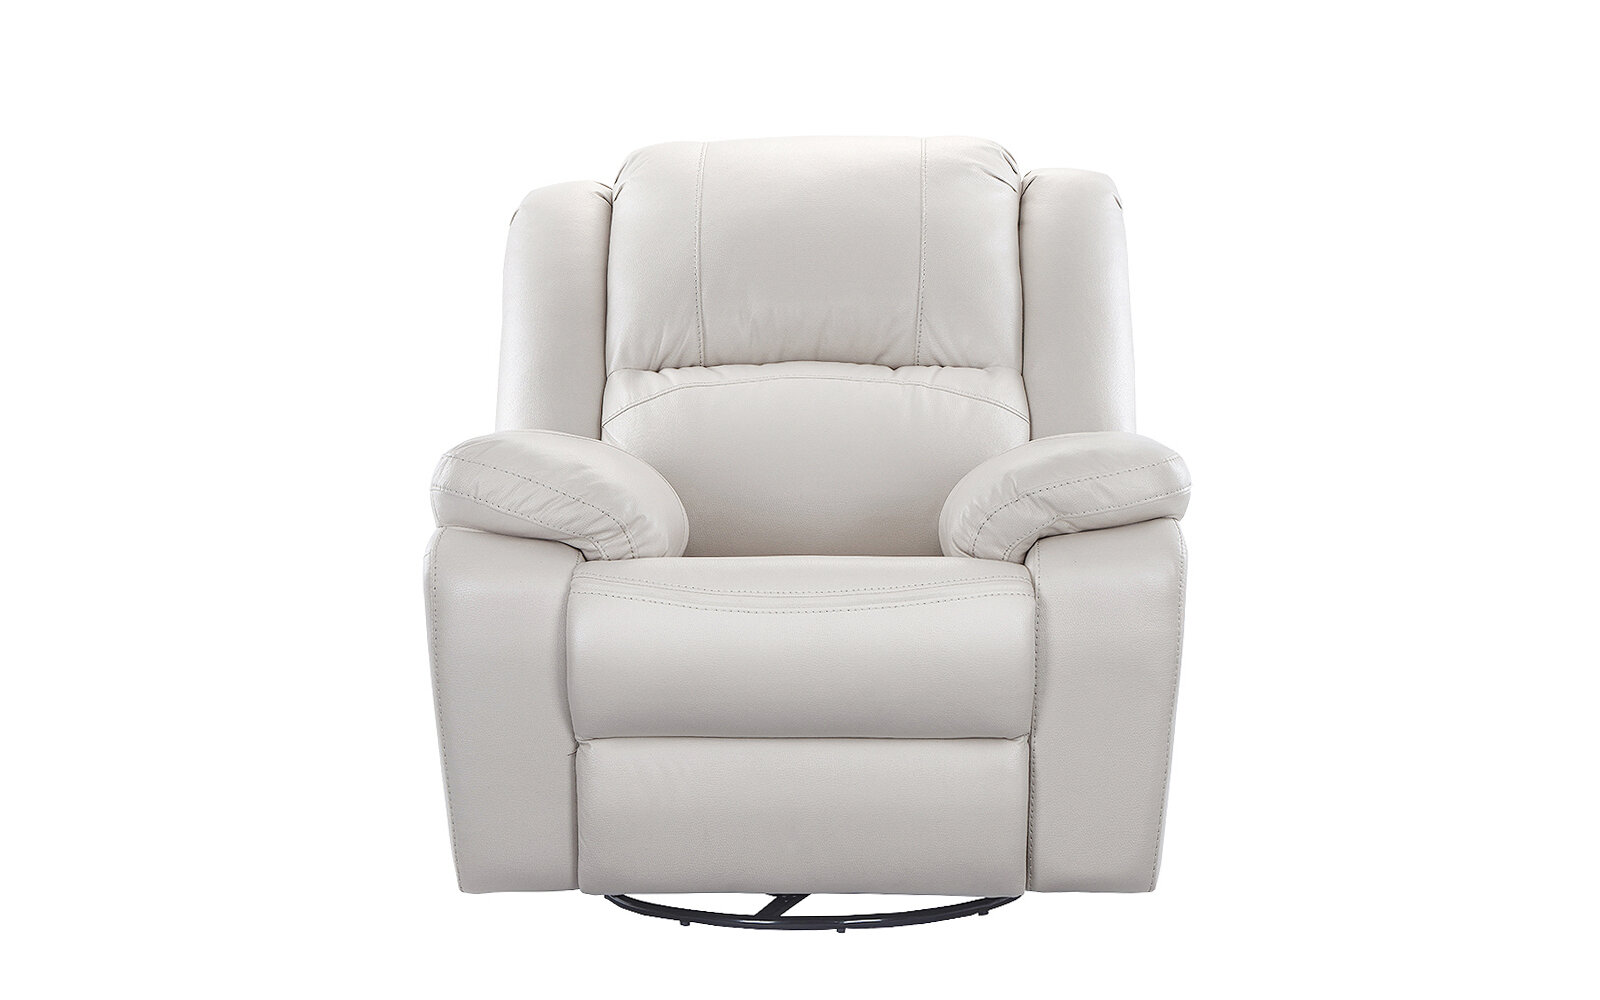 Wayfair Swivel Glider Chair: Henry Power Recliner Chair Reviews